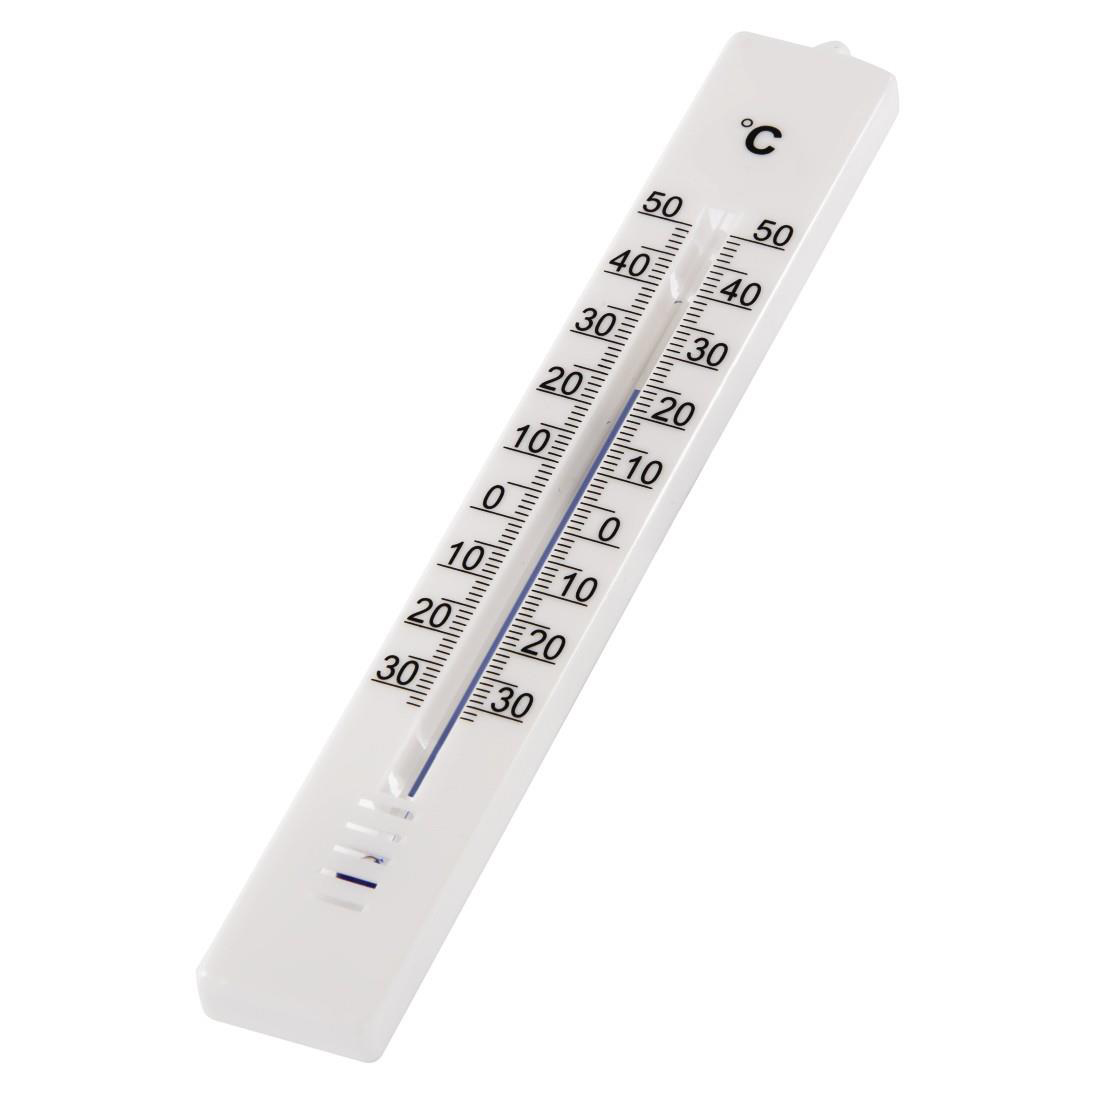 Image for Hama Thermometer Indoor/Outdoor Use 18cm Ref 136282